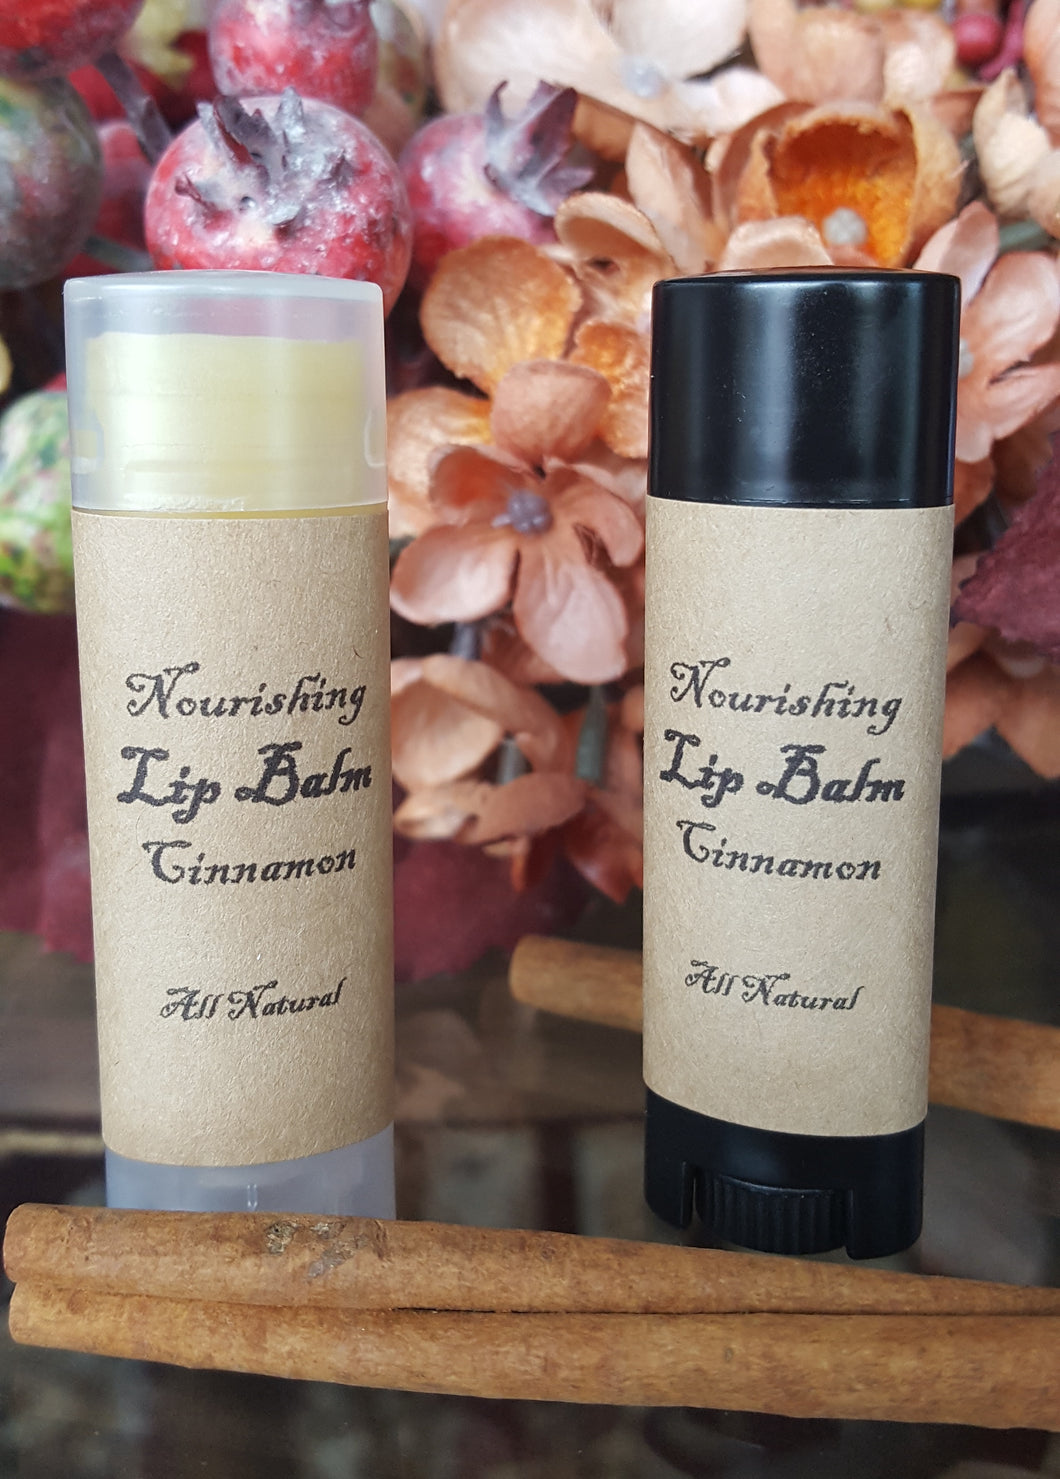 Nourishing Lip Balm - Untinted